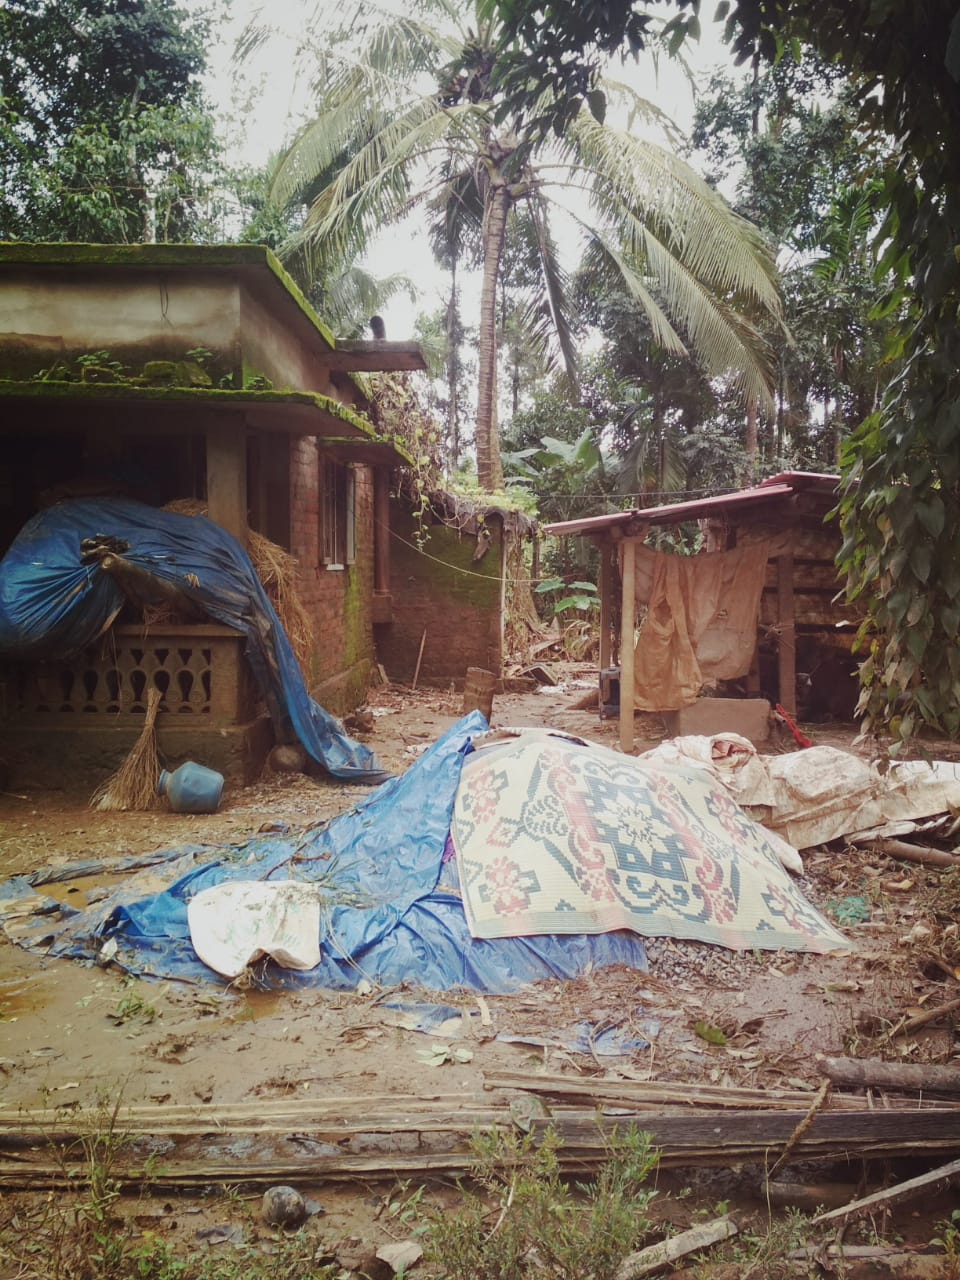 Flood devastation in Kottayam, surveyed by CBM India staff.